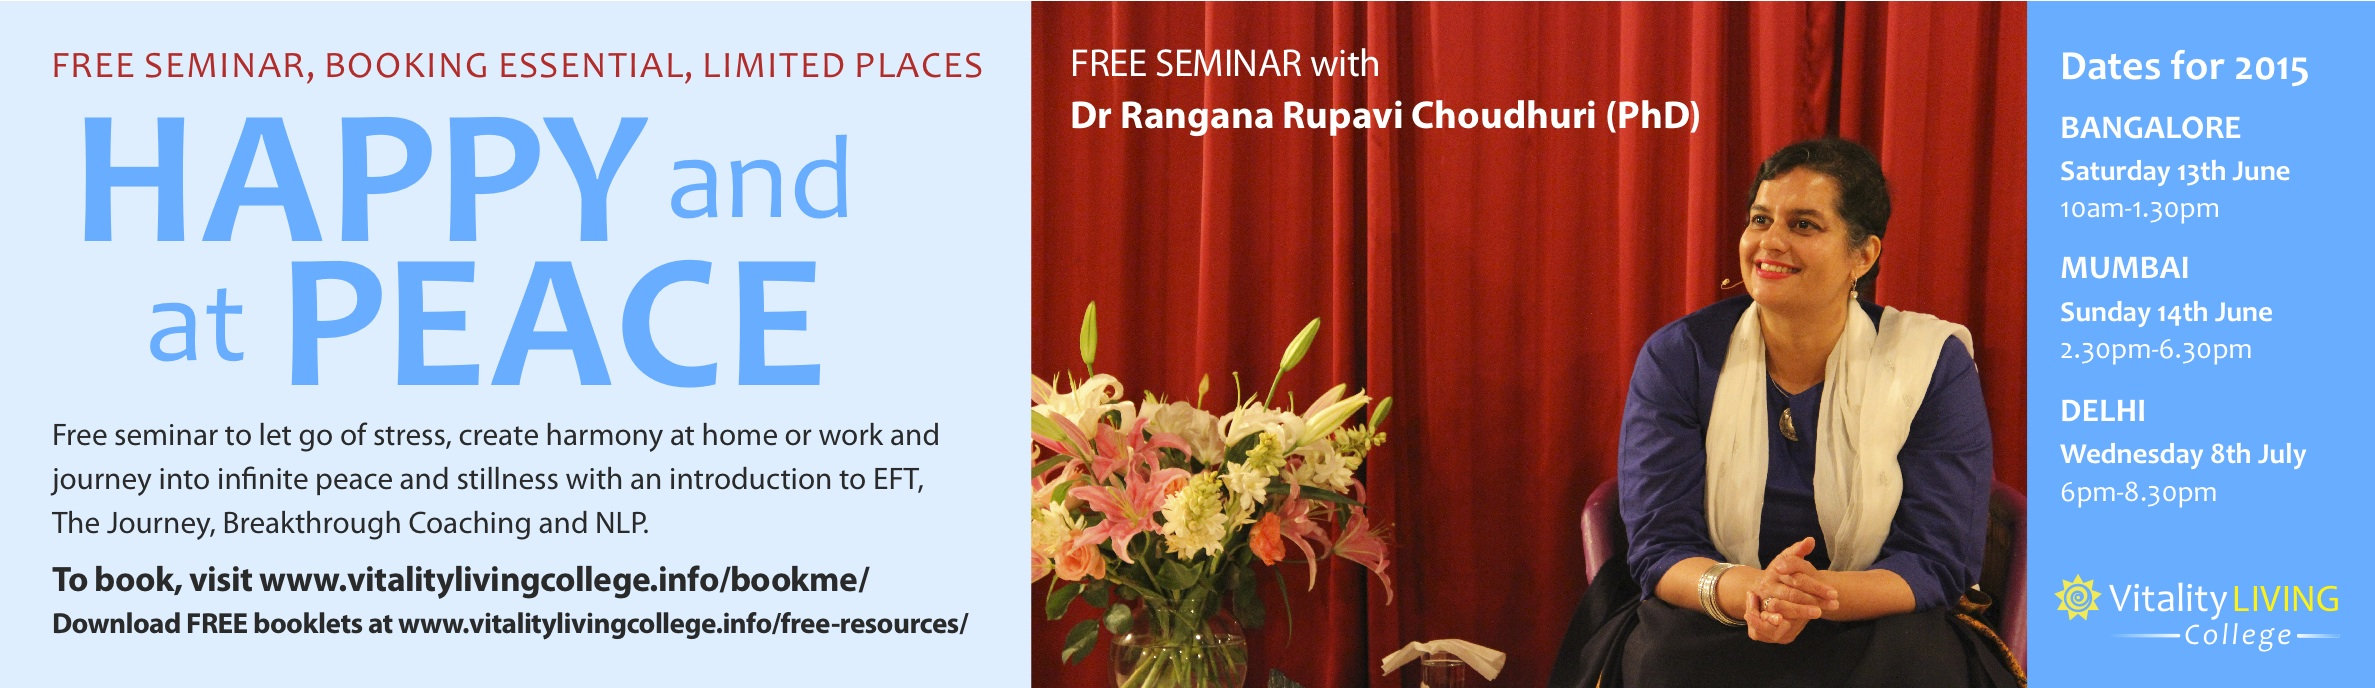 FREE SEMINAR ON HOW TO BE HAPPY AND AT PEACE WITH DR RANGANA RUPAVI CHOUDHURI (PhD)